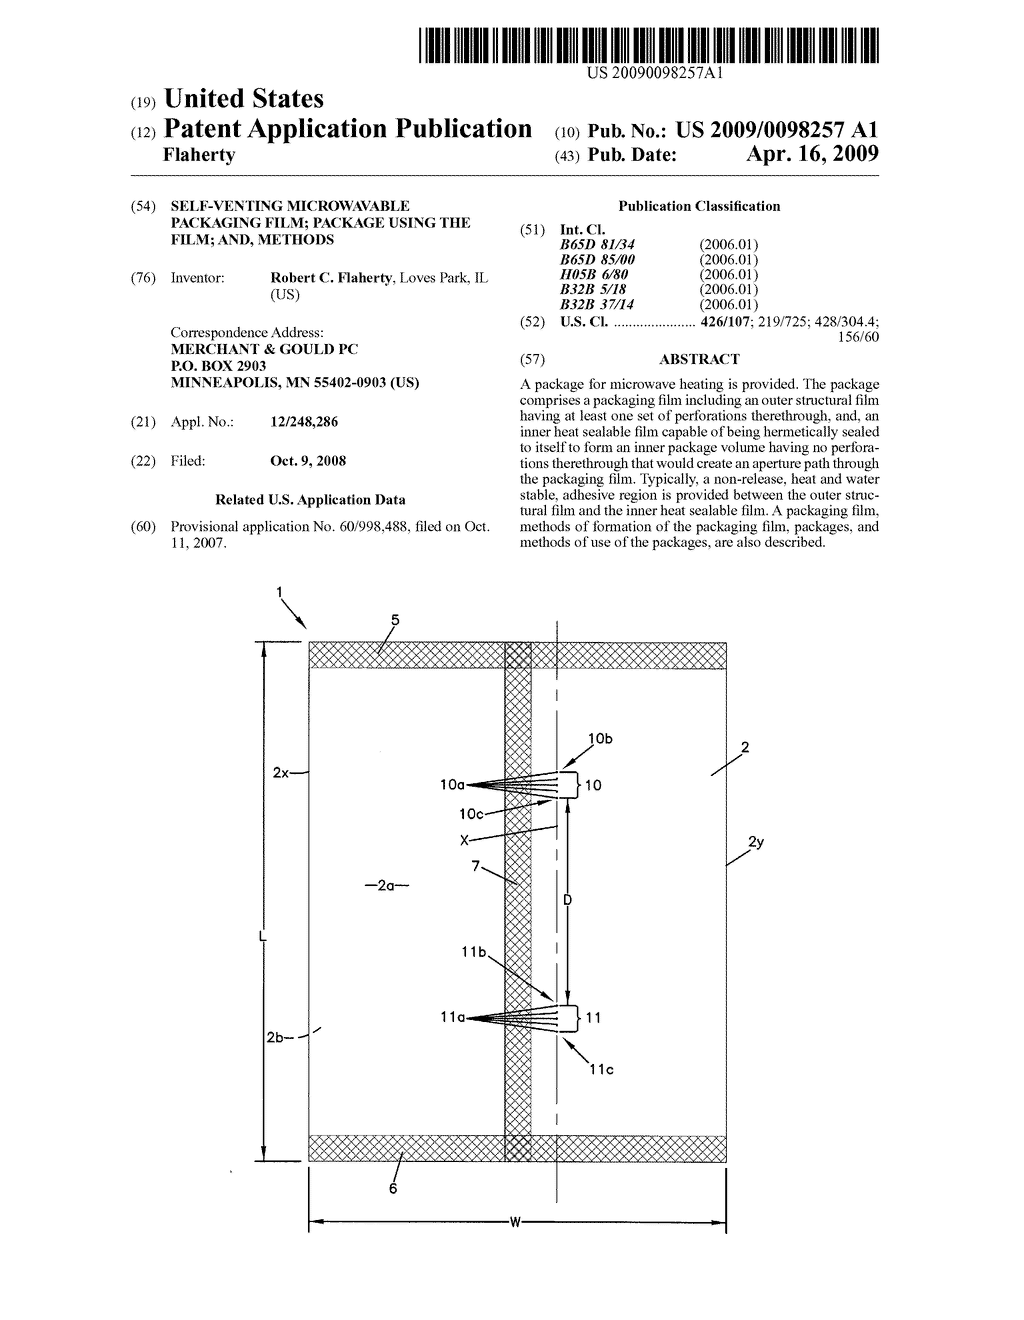 SELF-VENTING MICROWAVABLE PACKAGING FILM; PACKAGE USING THE FILM; AND, METHODS - diagram, schematic, and image 01